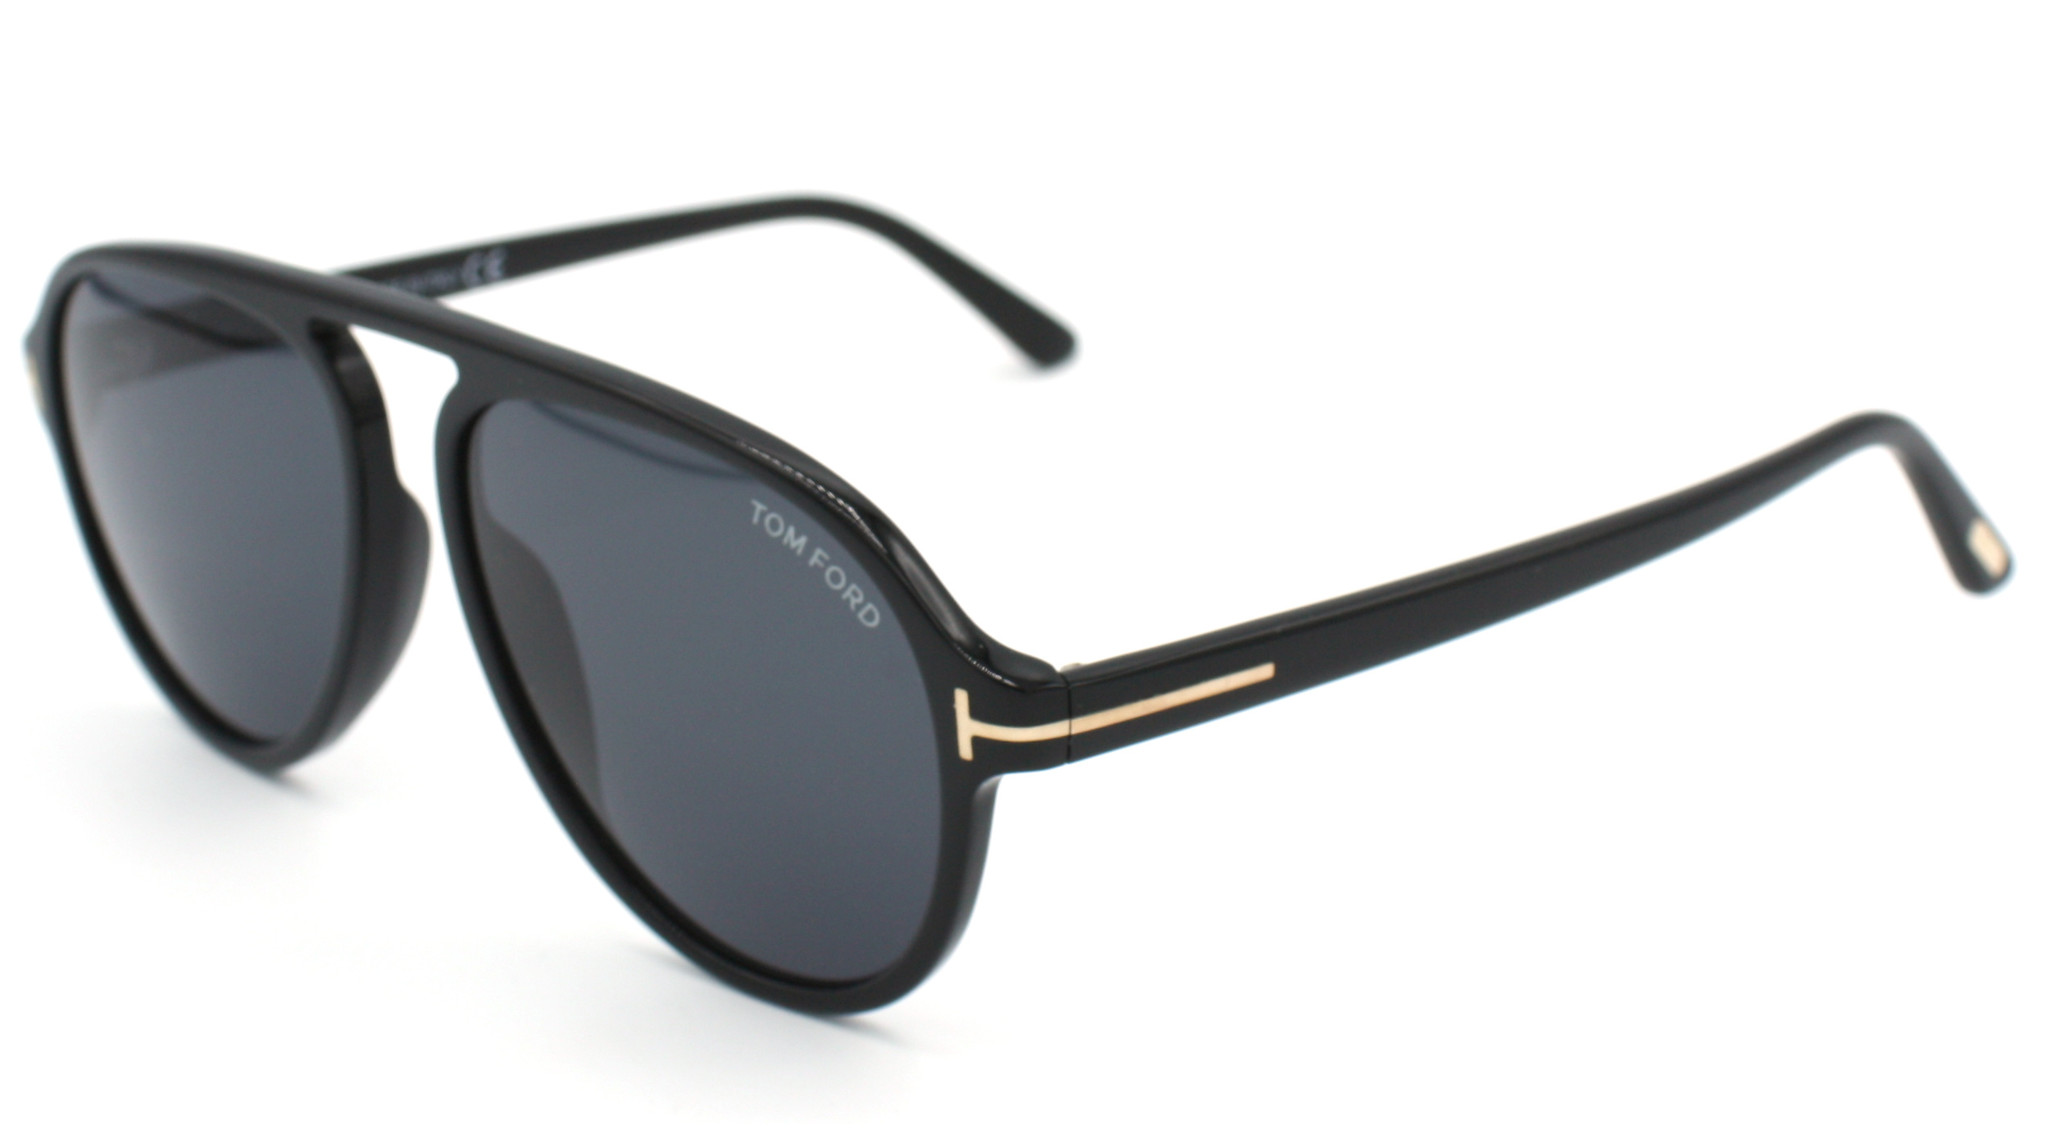 Tom Ford - TF0756/S - 01A-2